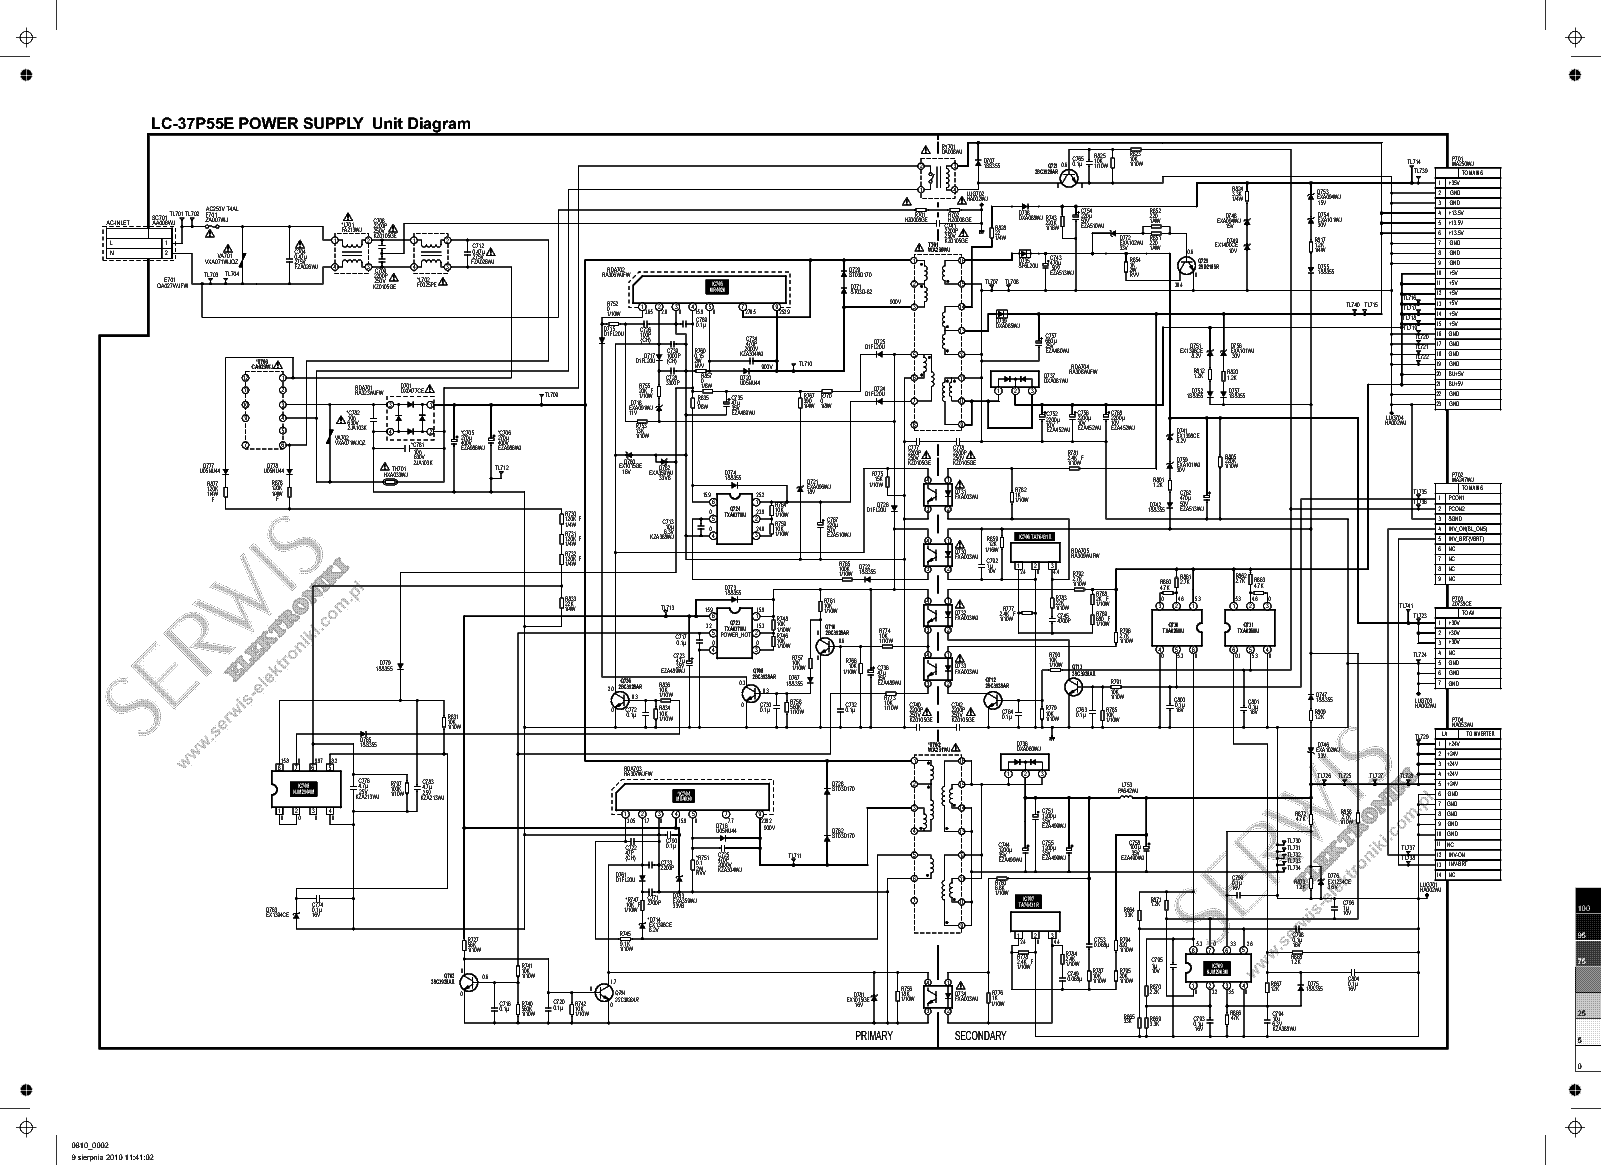 LC-37P55E INVERTER SCHEMATIC SCH Service Manual download